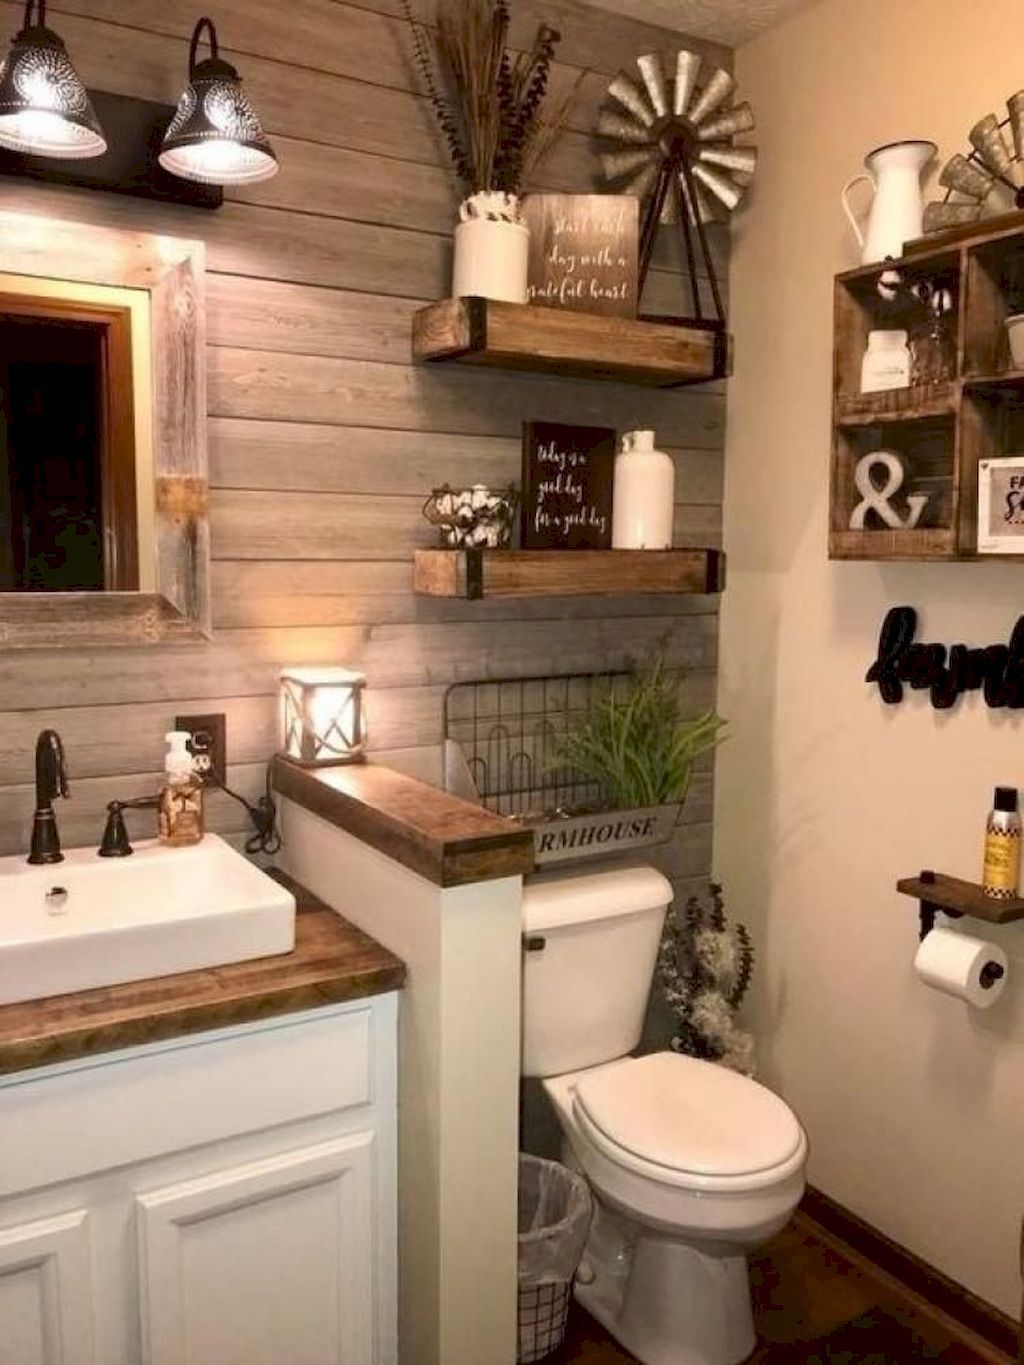 10+ Small Bathroom Remodel Design Ideas On A Budget - home design